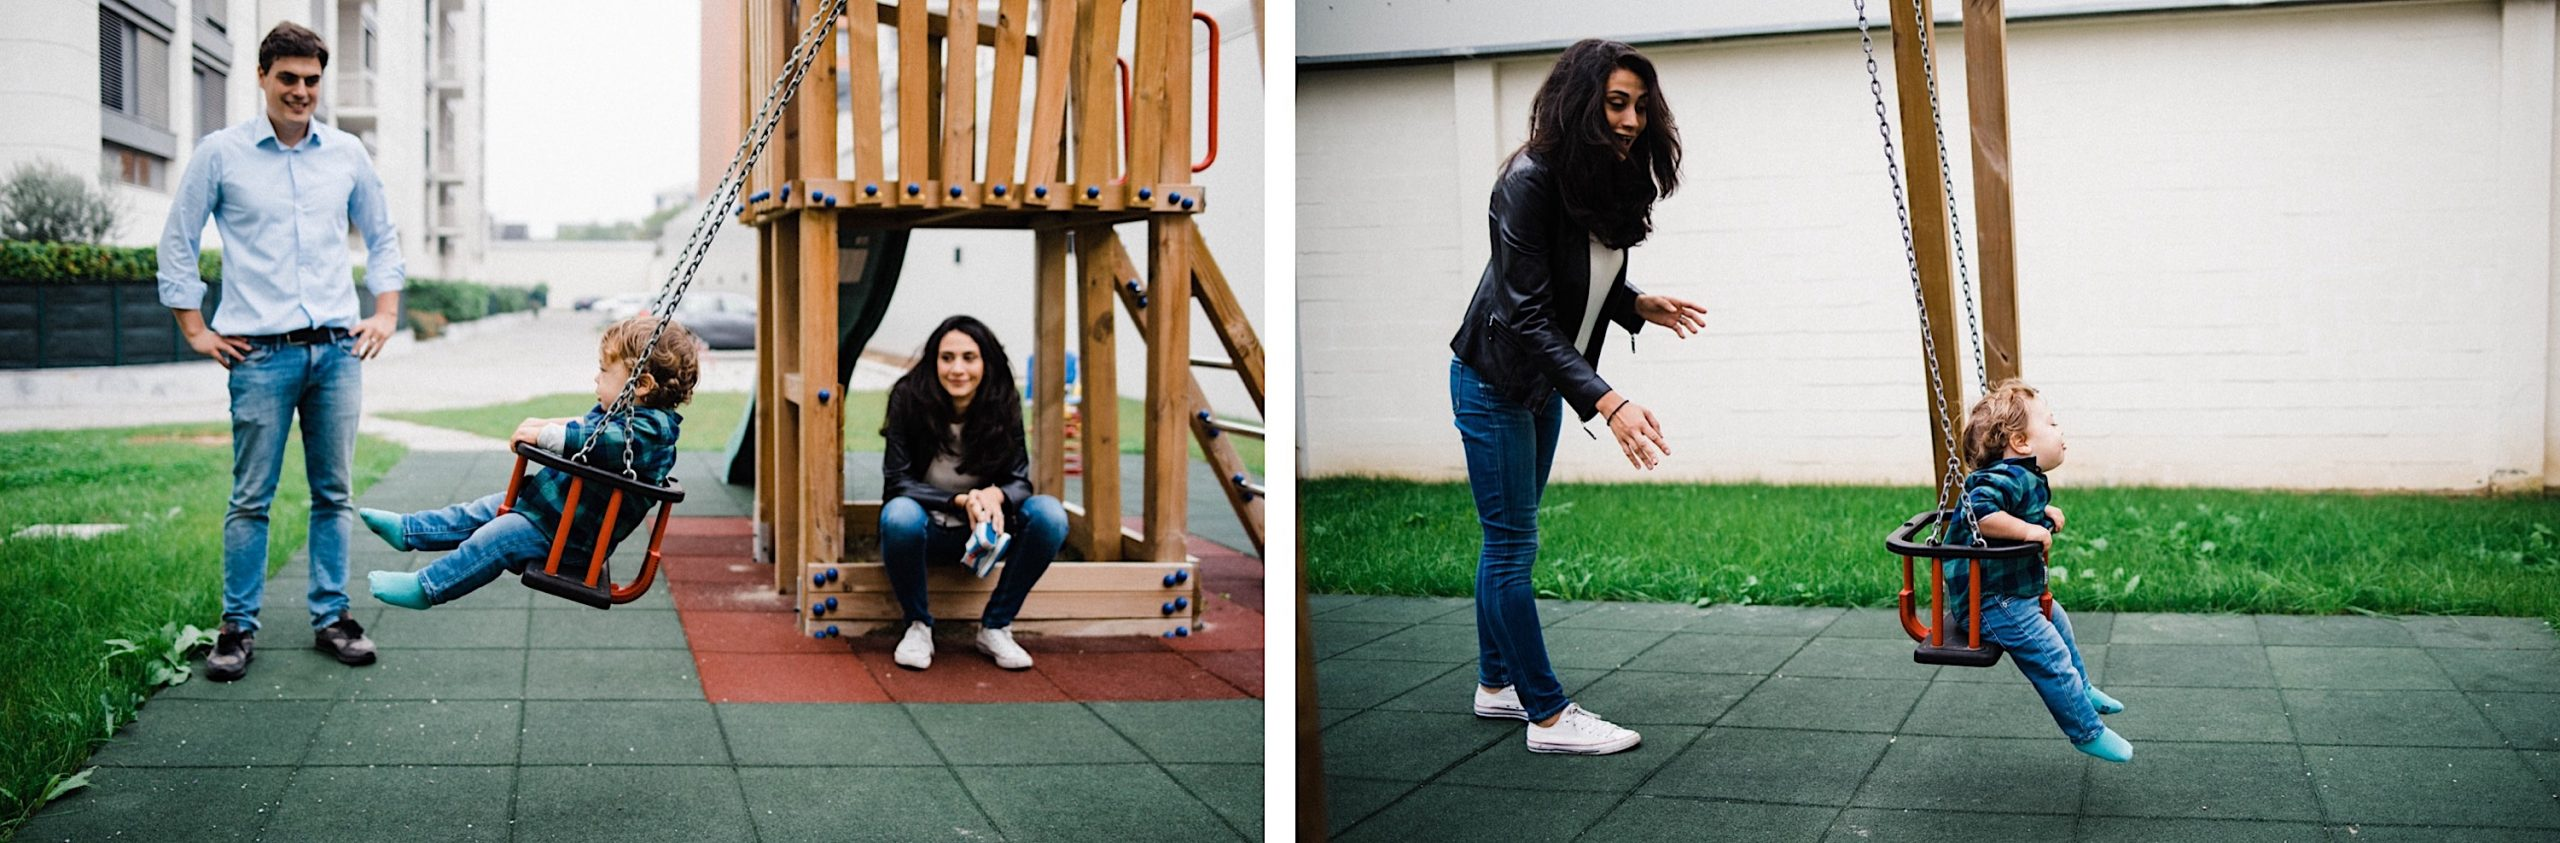 Two photos of a boy playing on a swing, on the left his Mum watches on while his Dad pushes the swing. In the second his Mum is pushing the swing.